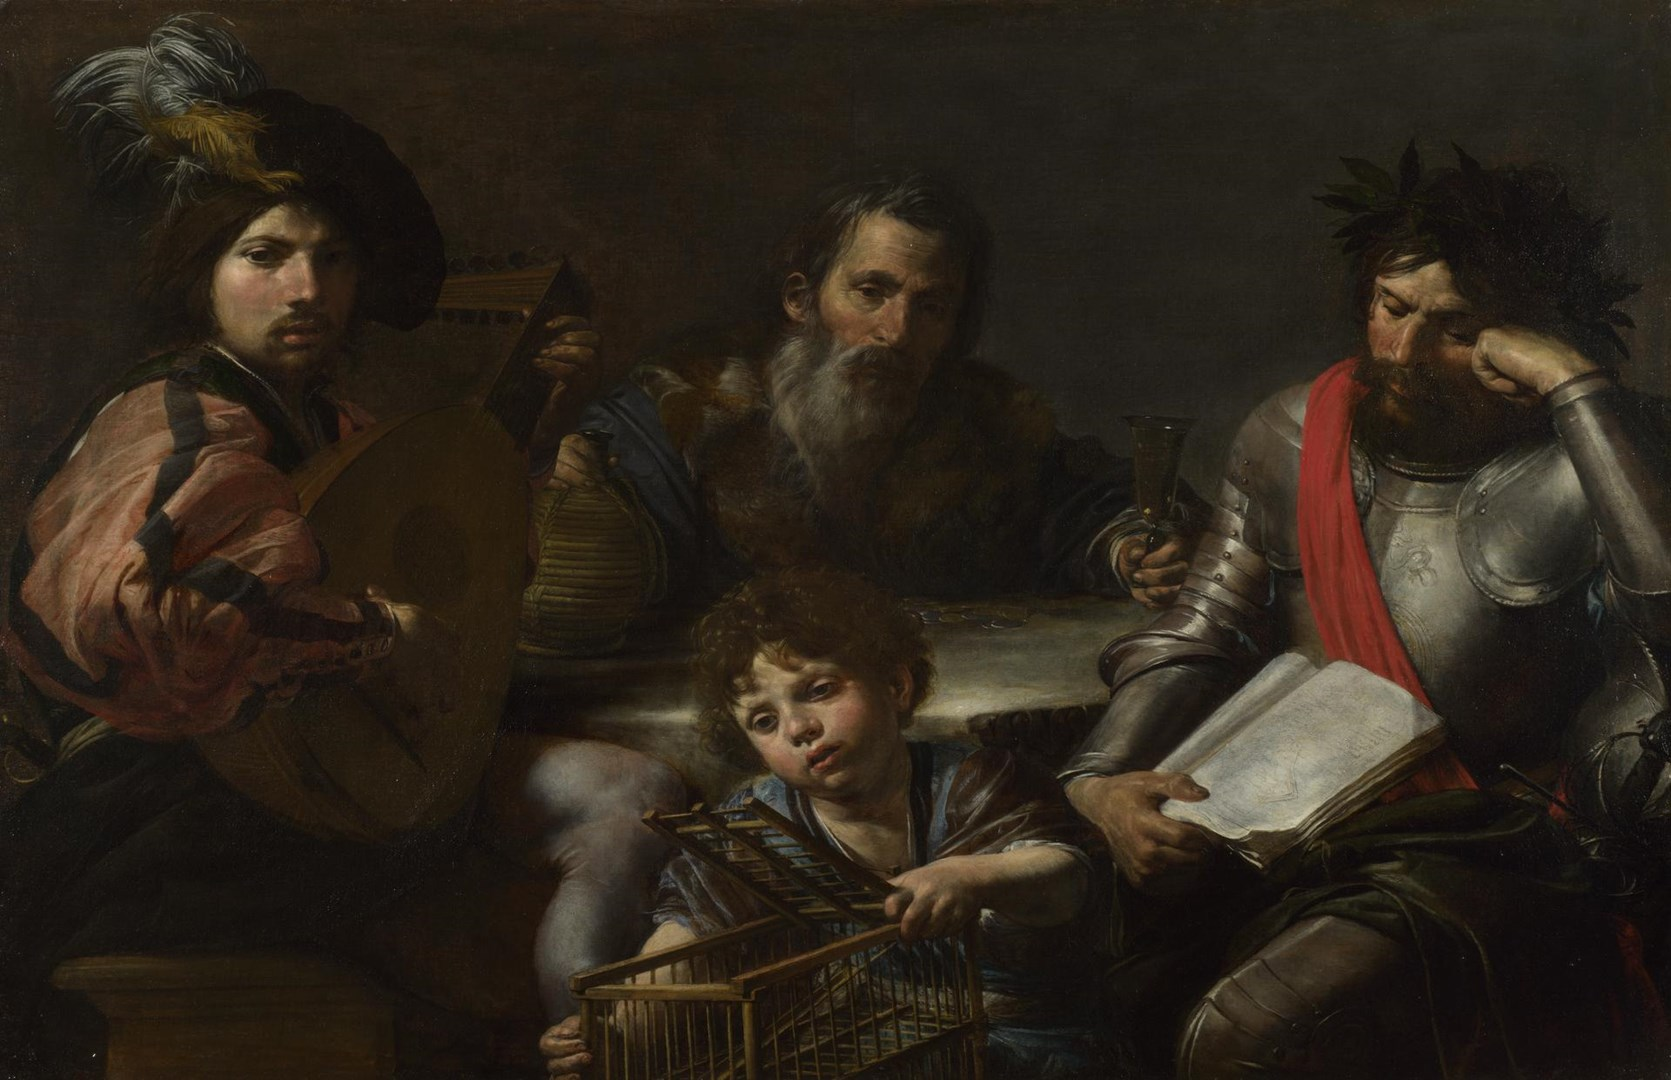 The Four Ages of Man by Valentin de Boulogne